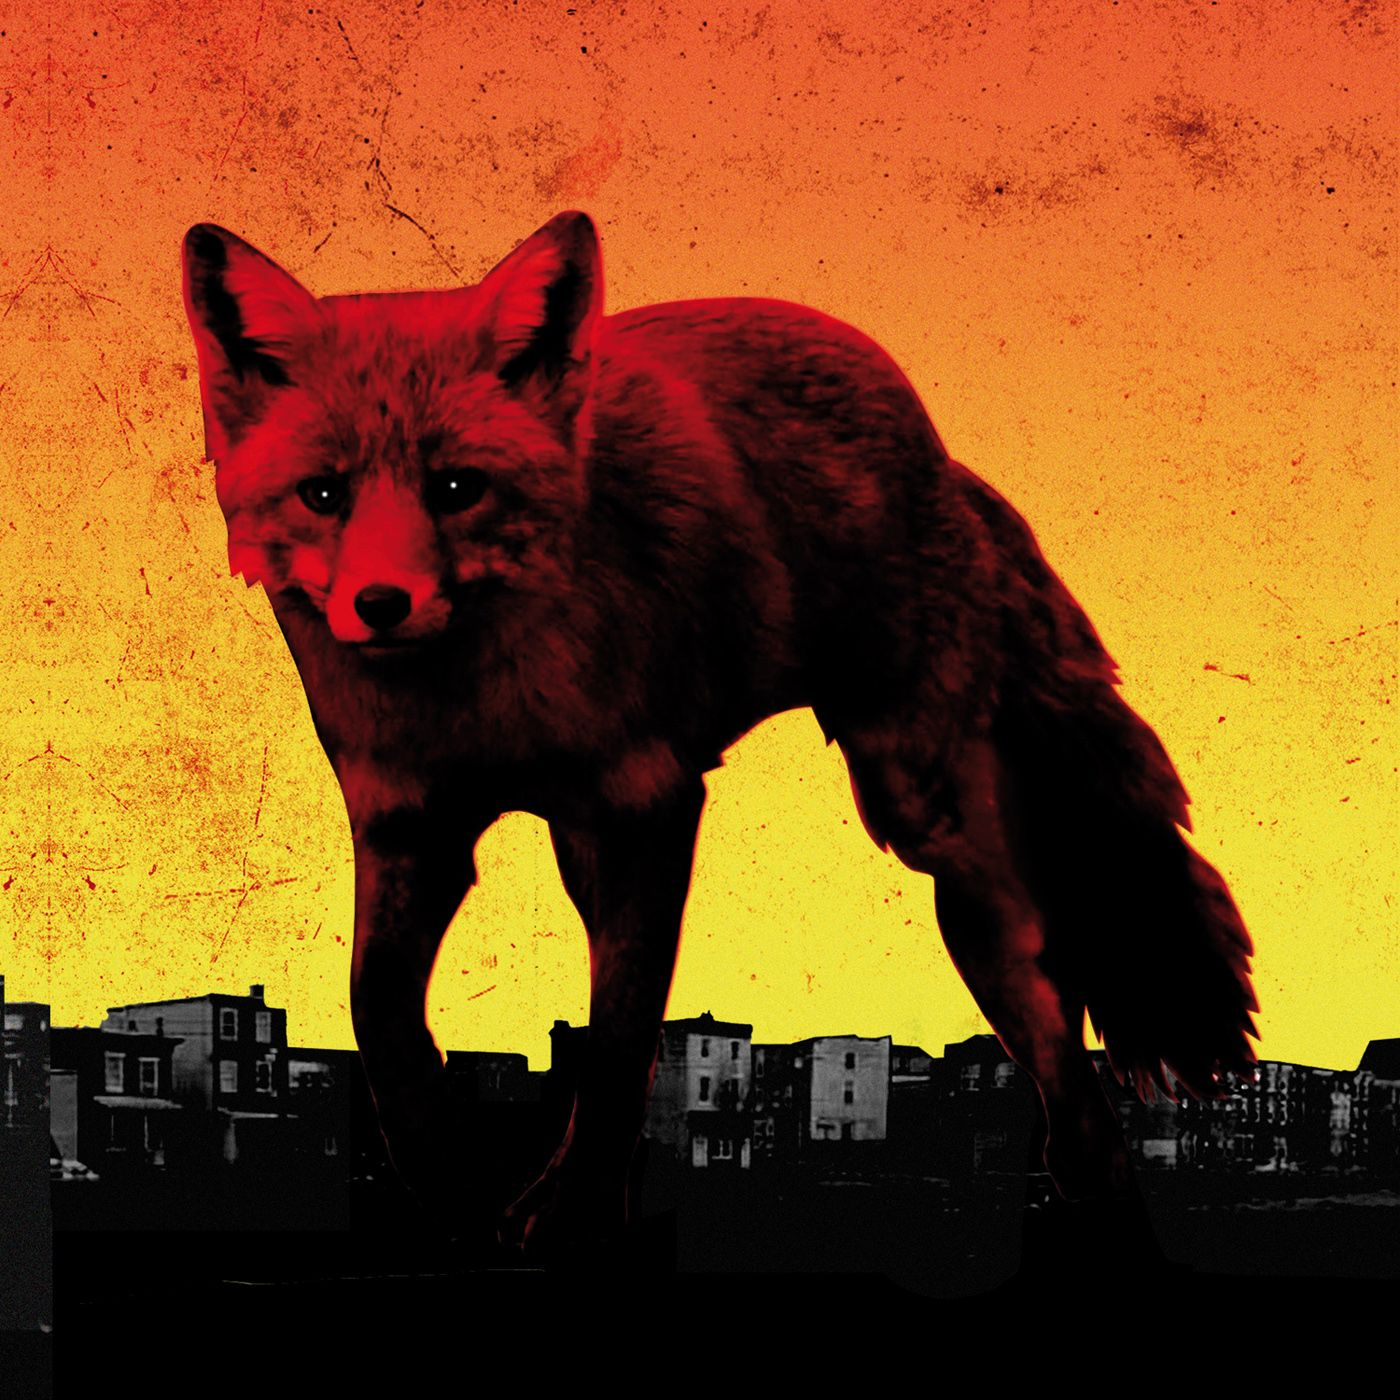 The Prodigy - The Day Is My Enemy album cover